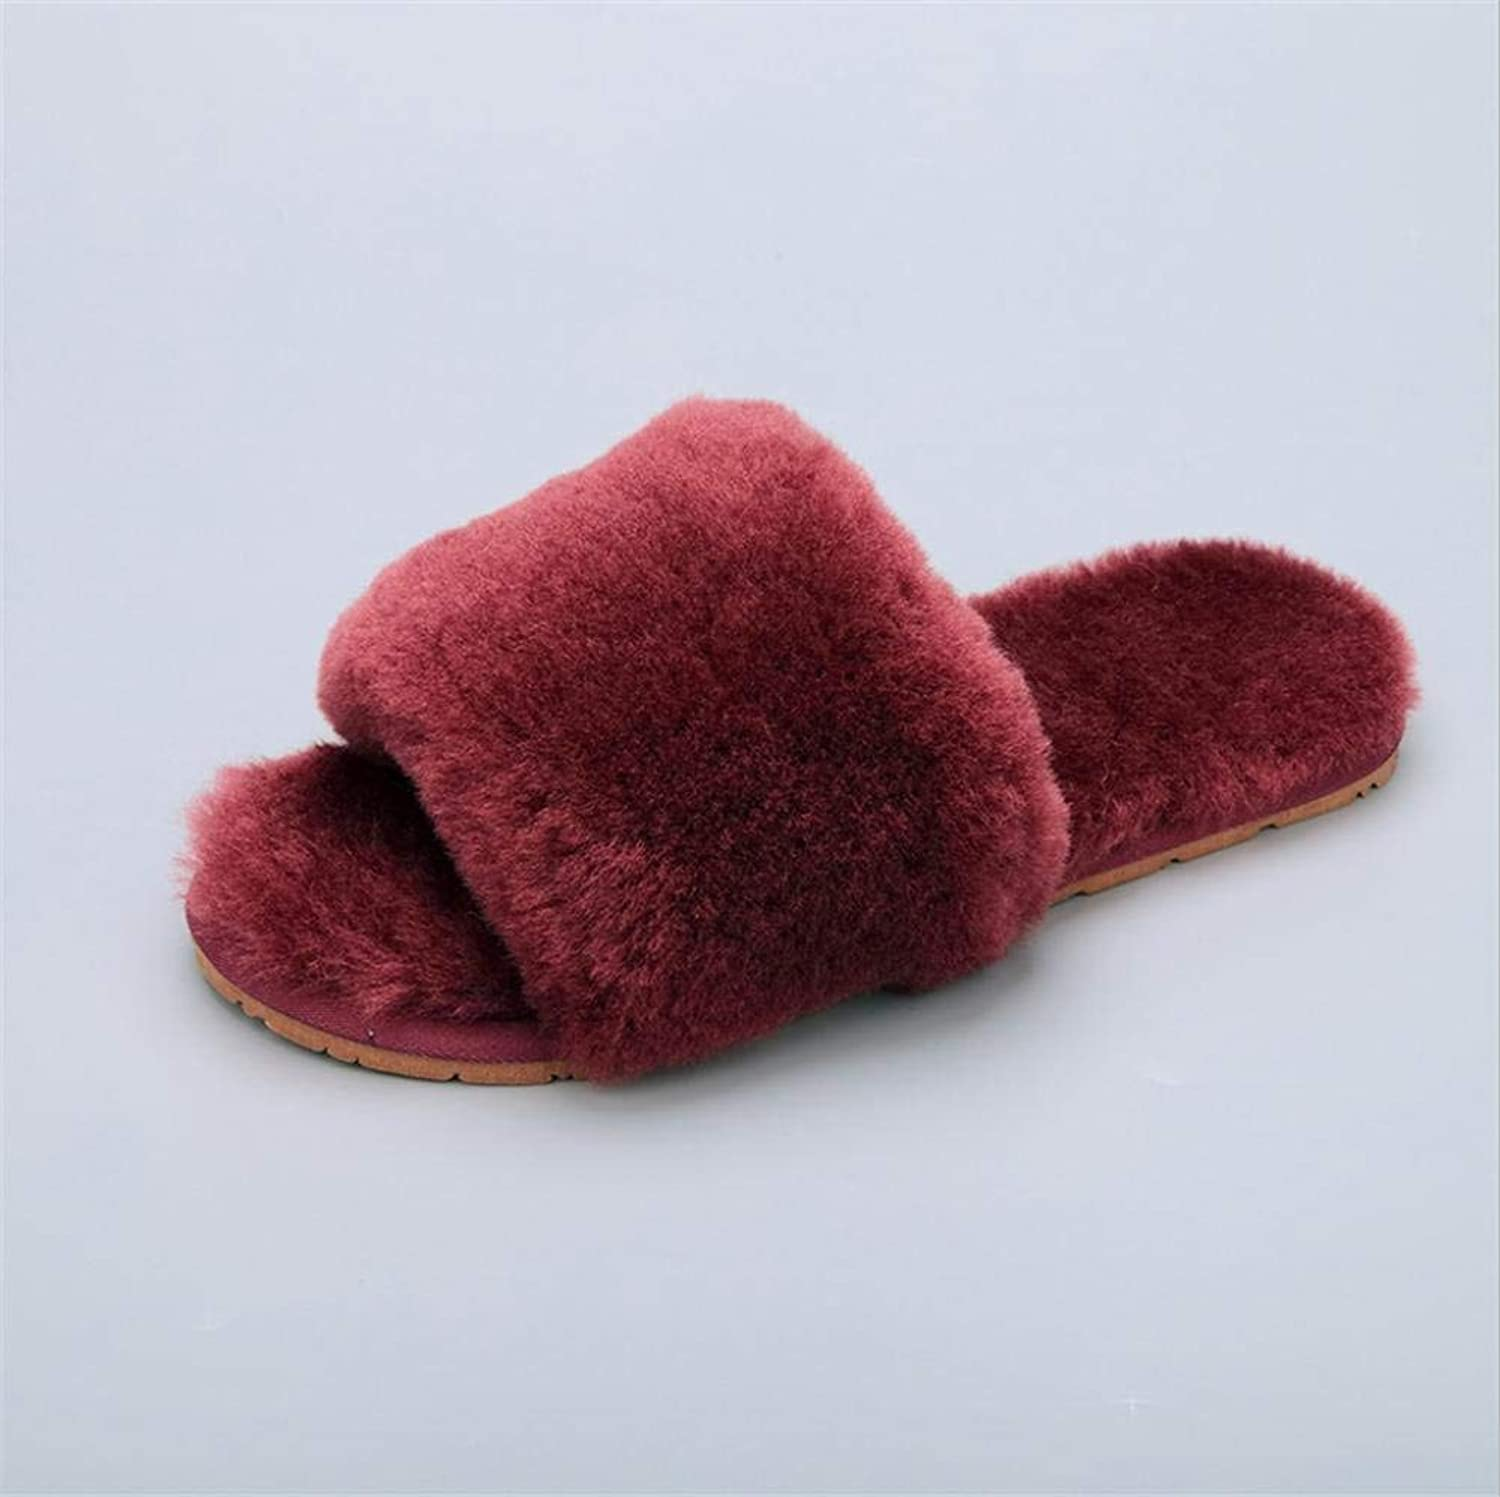 GouuoHi Womens Slippers Ladies Casual Stylish Slipper Indoor and Outdoor Home Keep Warm in Fall and Winter Fur Solid color Fluffy Super Soft Plush Slippers